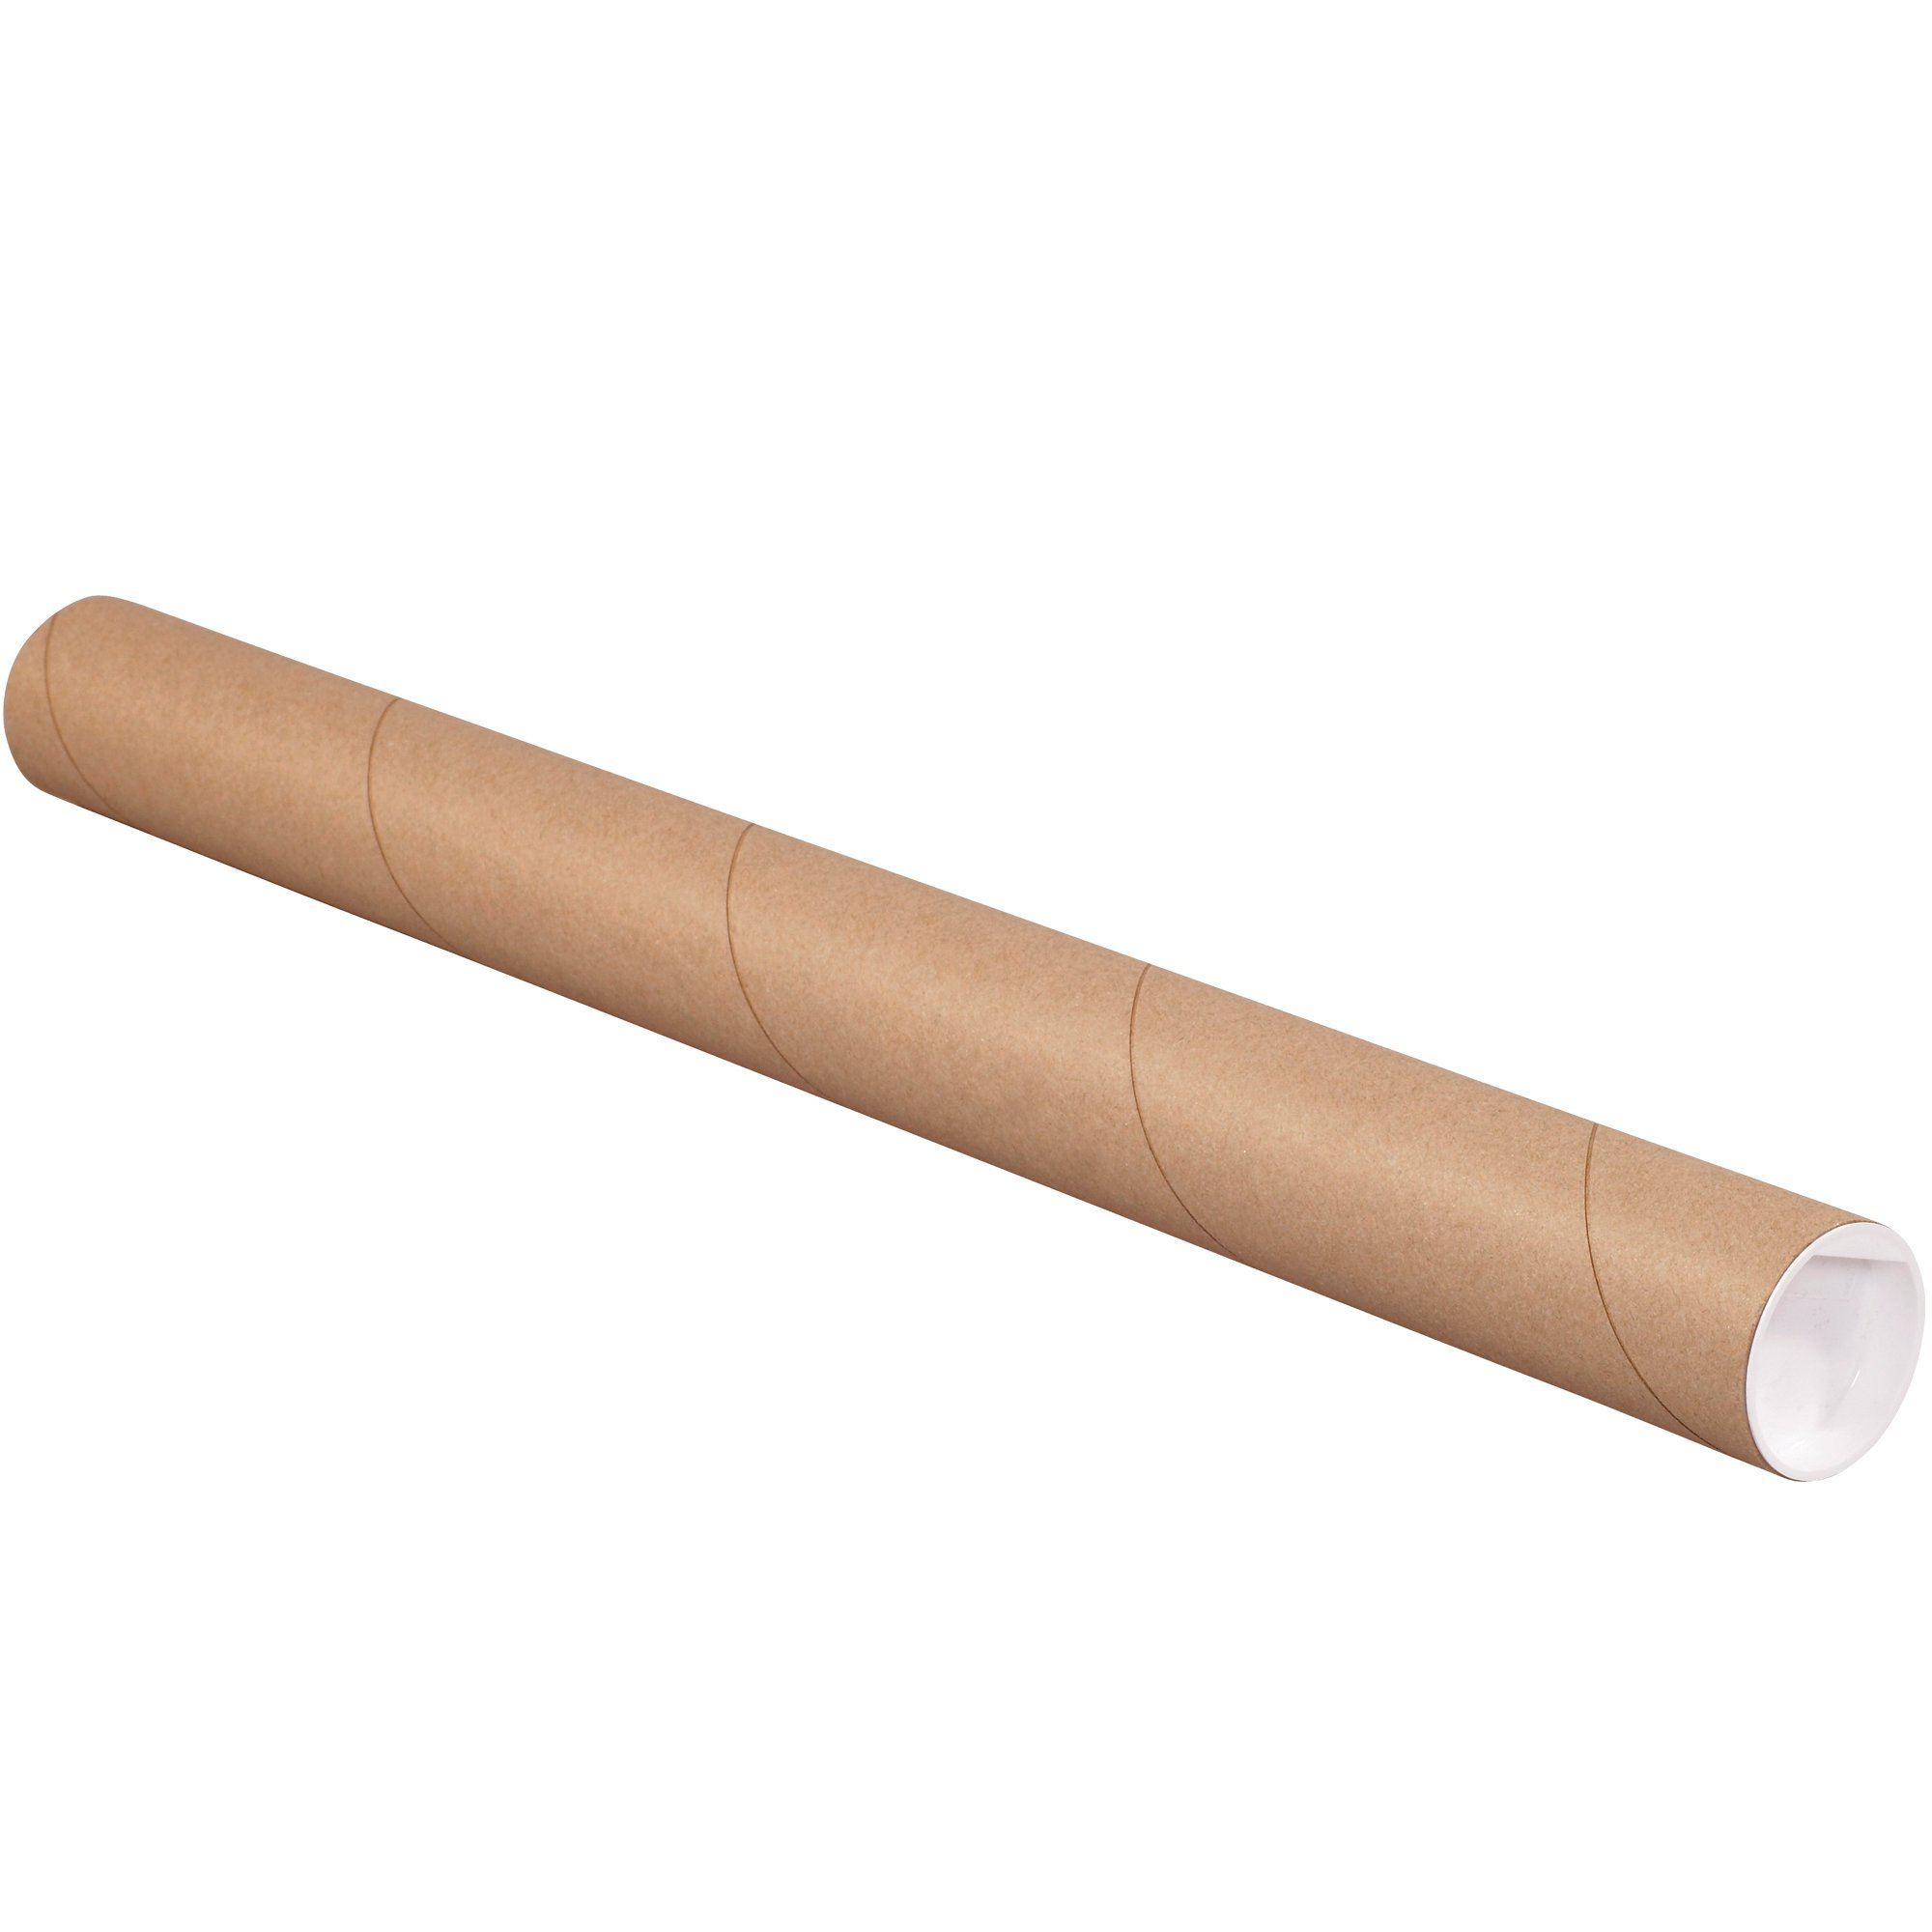 Mailing Tubes with Caps, 2'' x 60'', Kraft, 50/Case by Great Box Supply